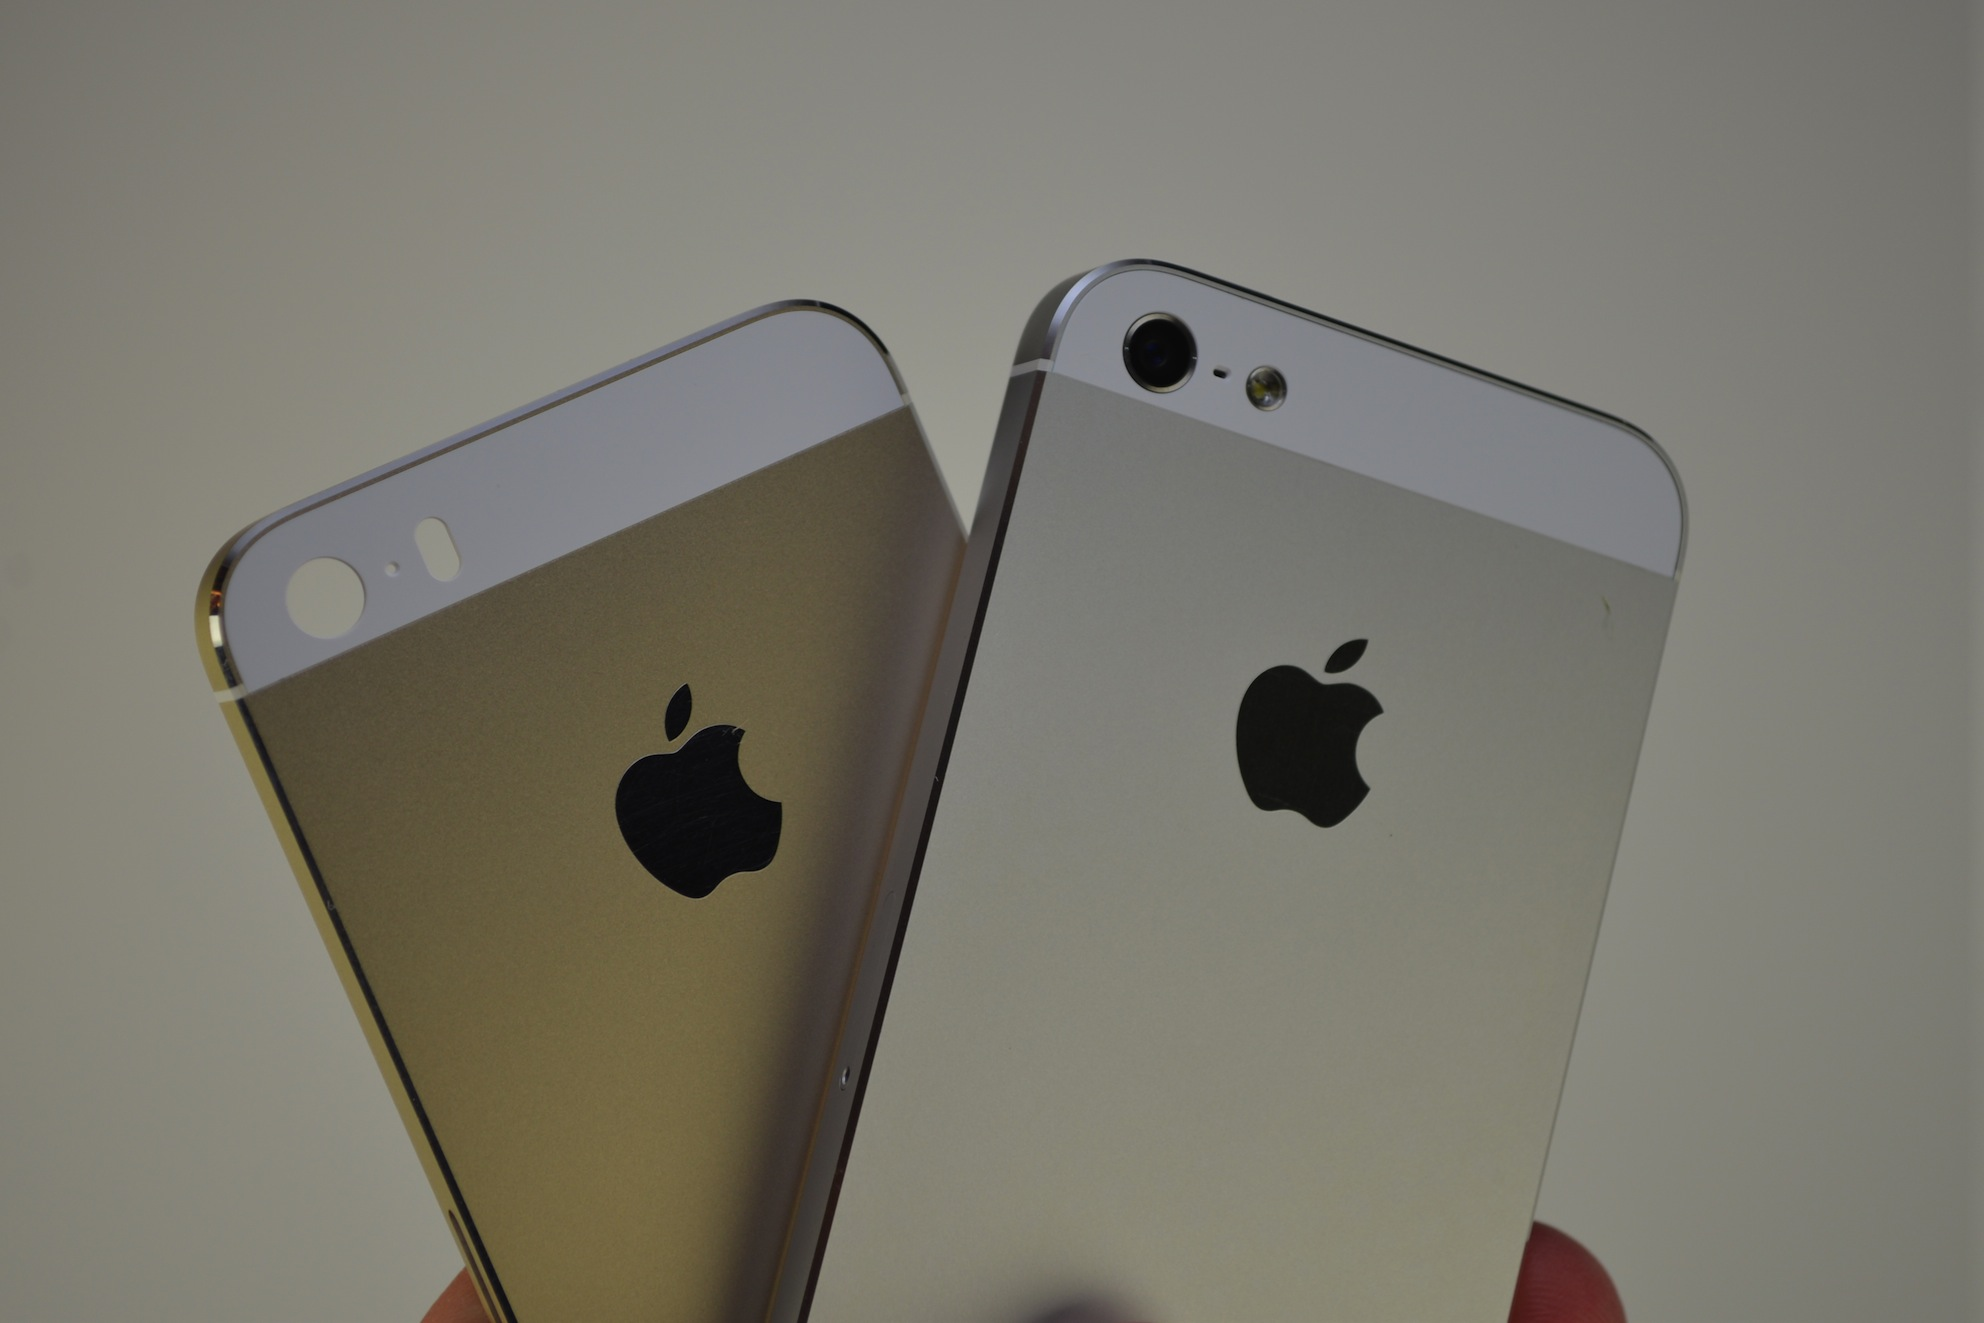 New pics of iPhone 5S and 5C – leaked